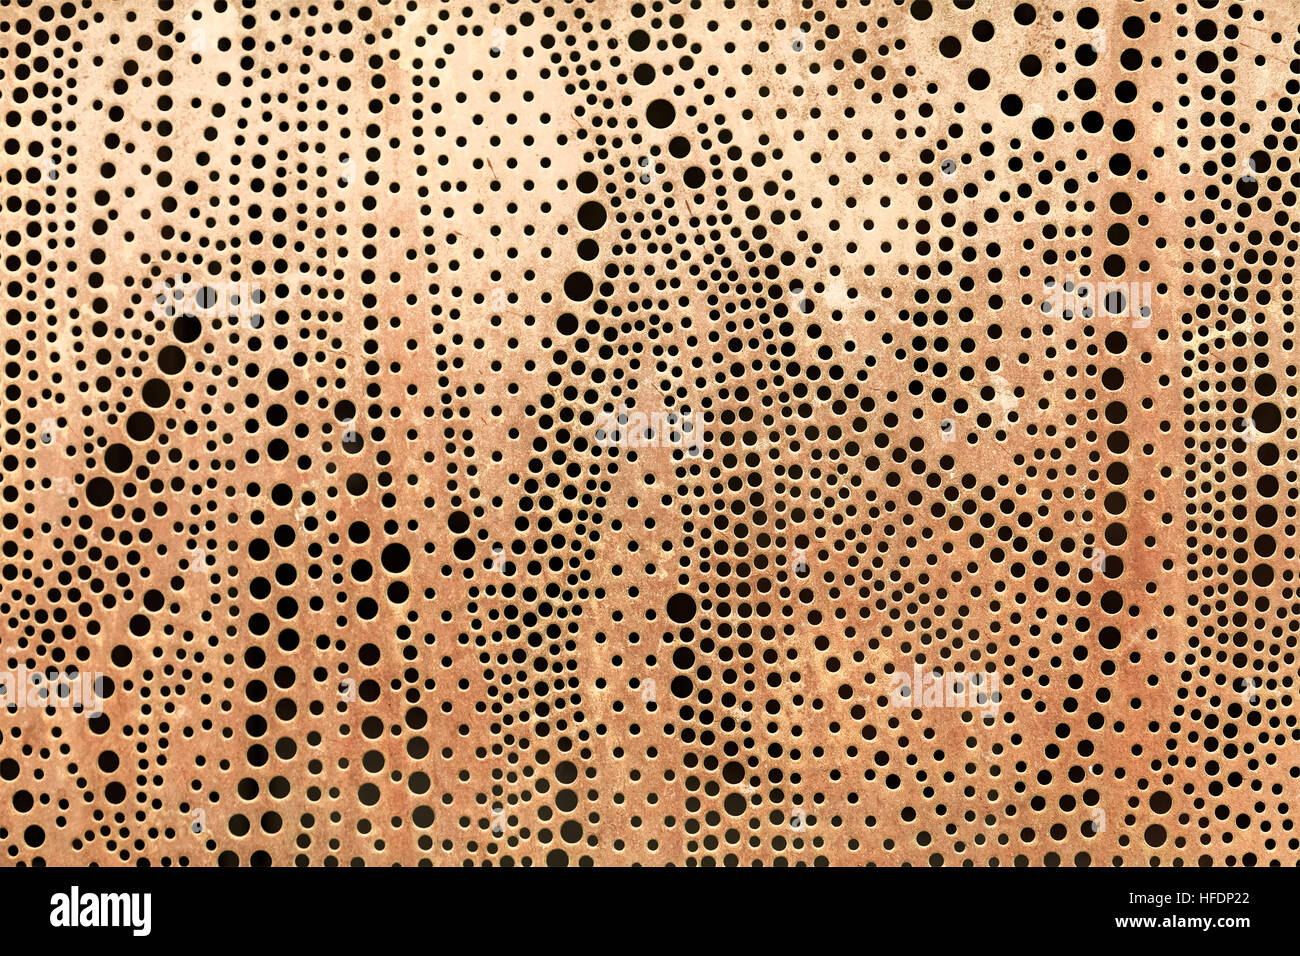 Perforated Metal Sheet Abstract Background Stock Photo